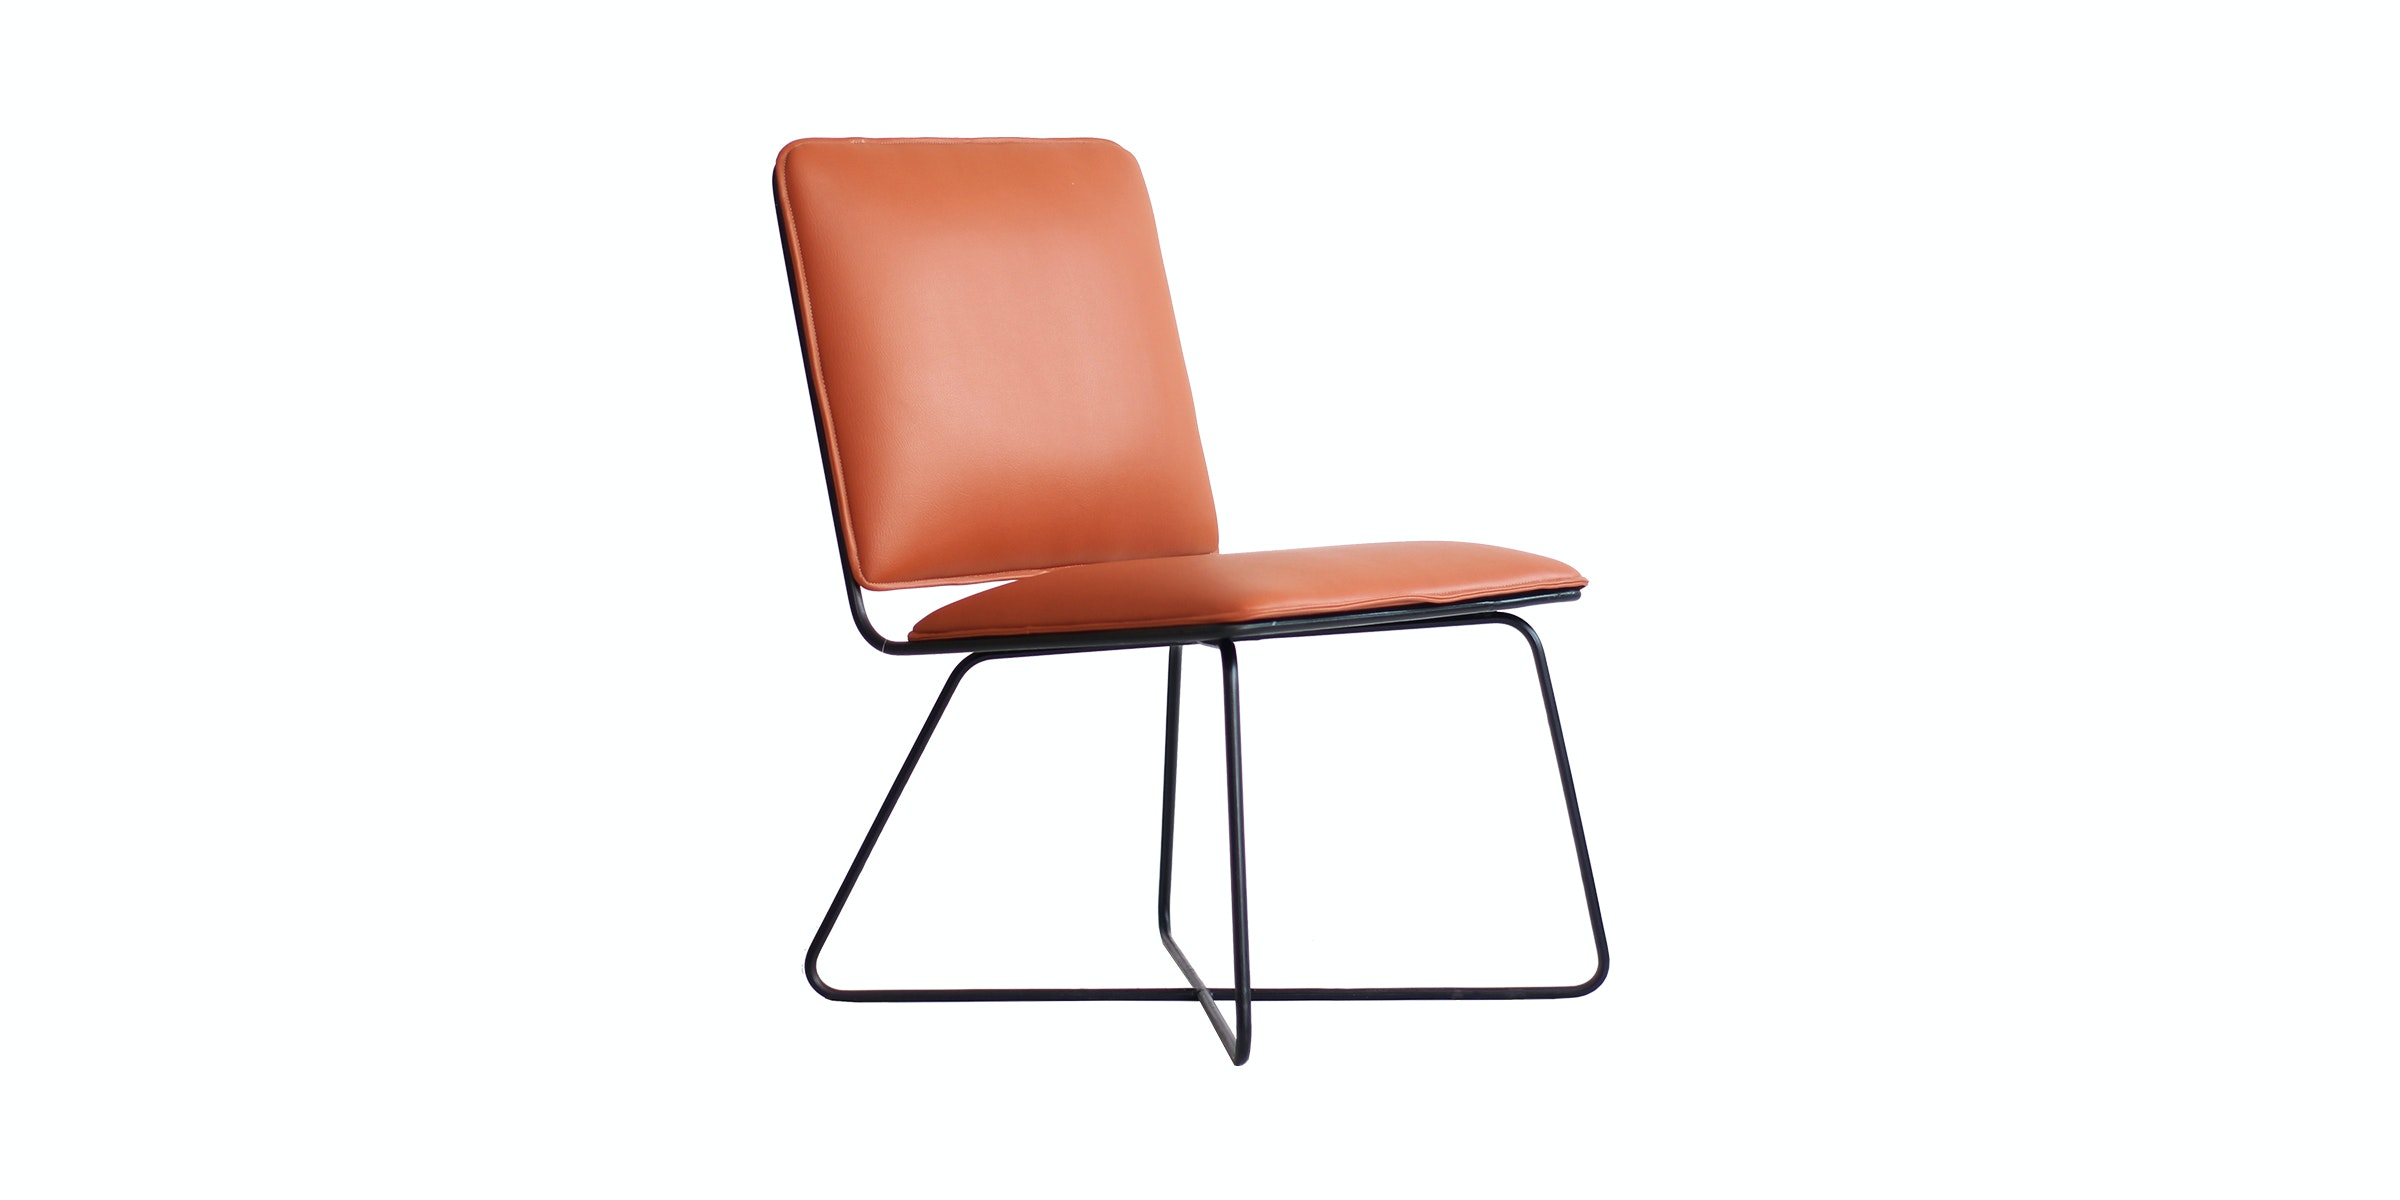 KANA FURNITURE Single Chair Steven VK